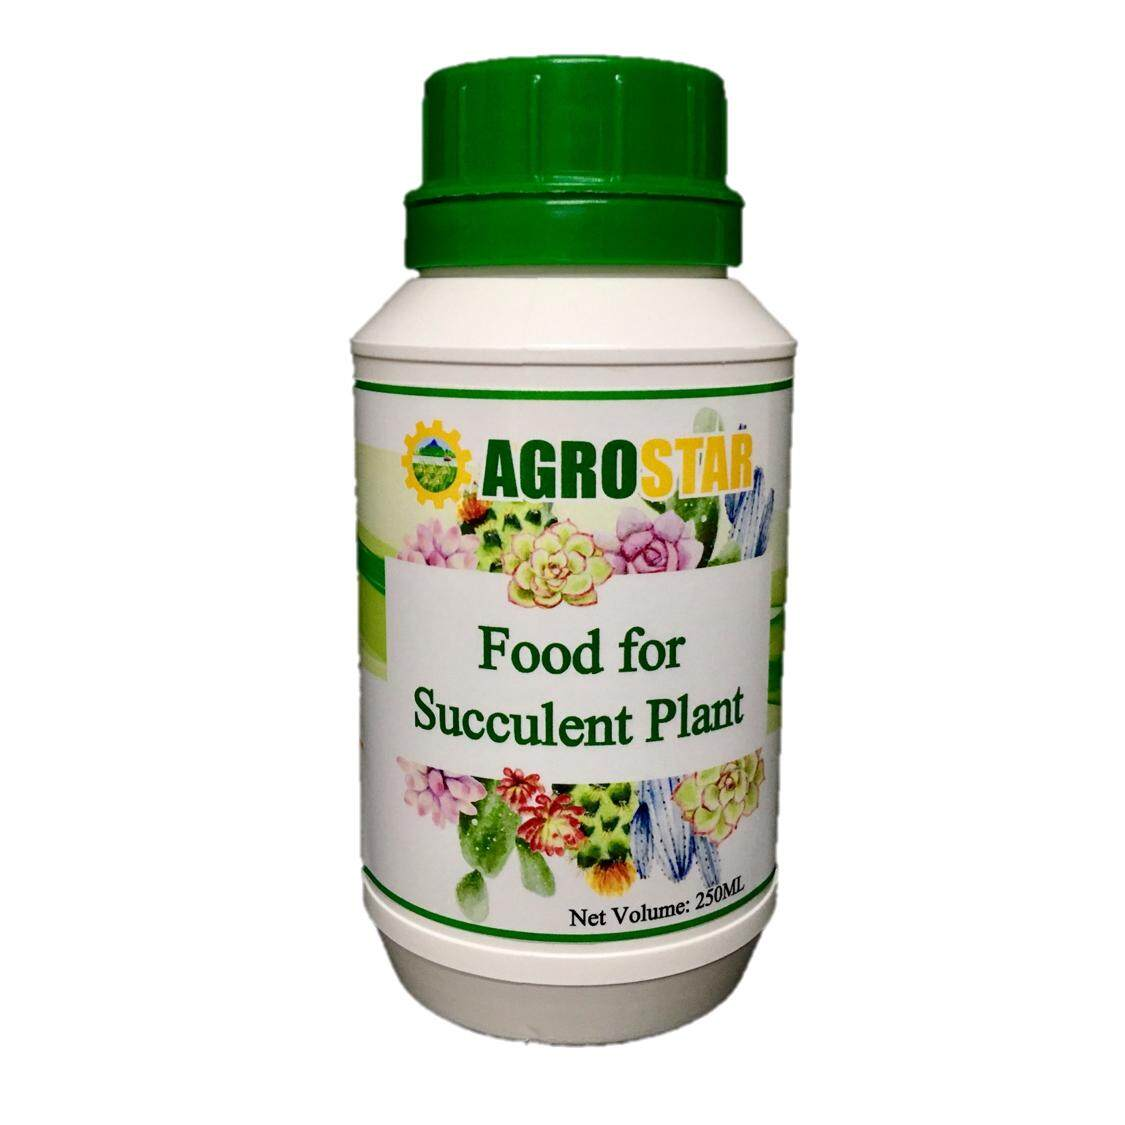 AGROSTAR - Food for Succulent Plant - Completed with Nitrogen, Phosphorus, Potassium nutrients, plant based amino acids, enzymes and trace elements (Brown) 250ML